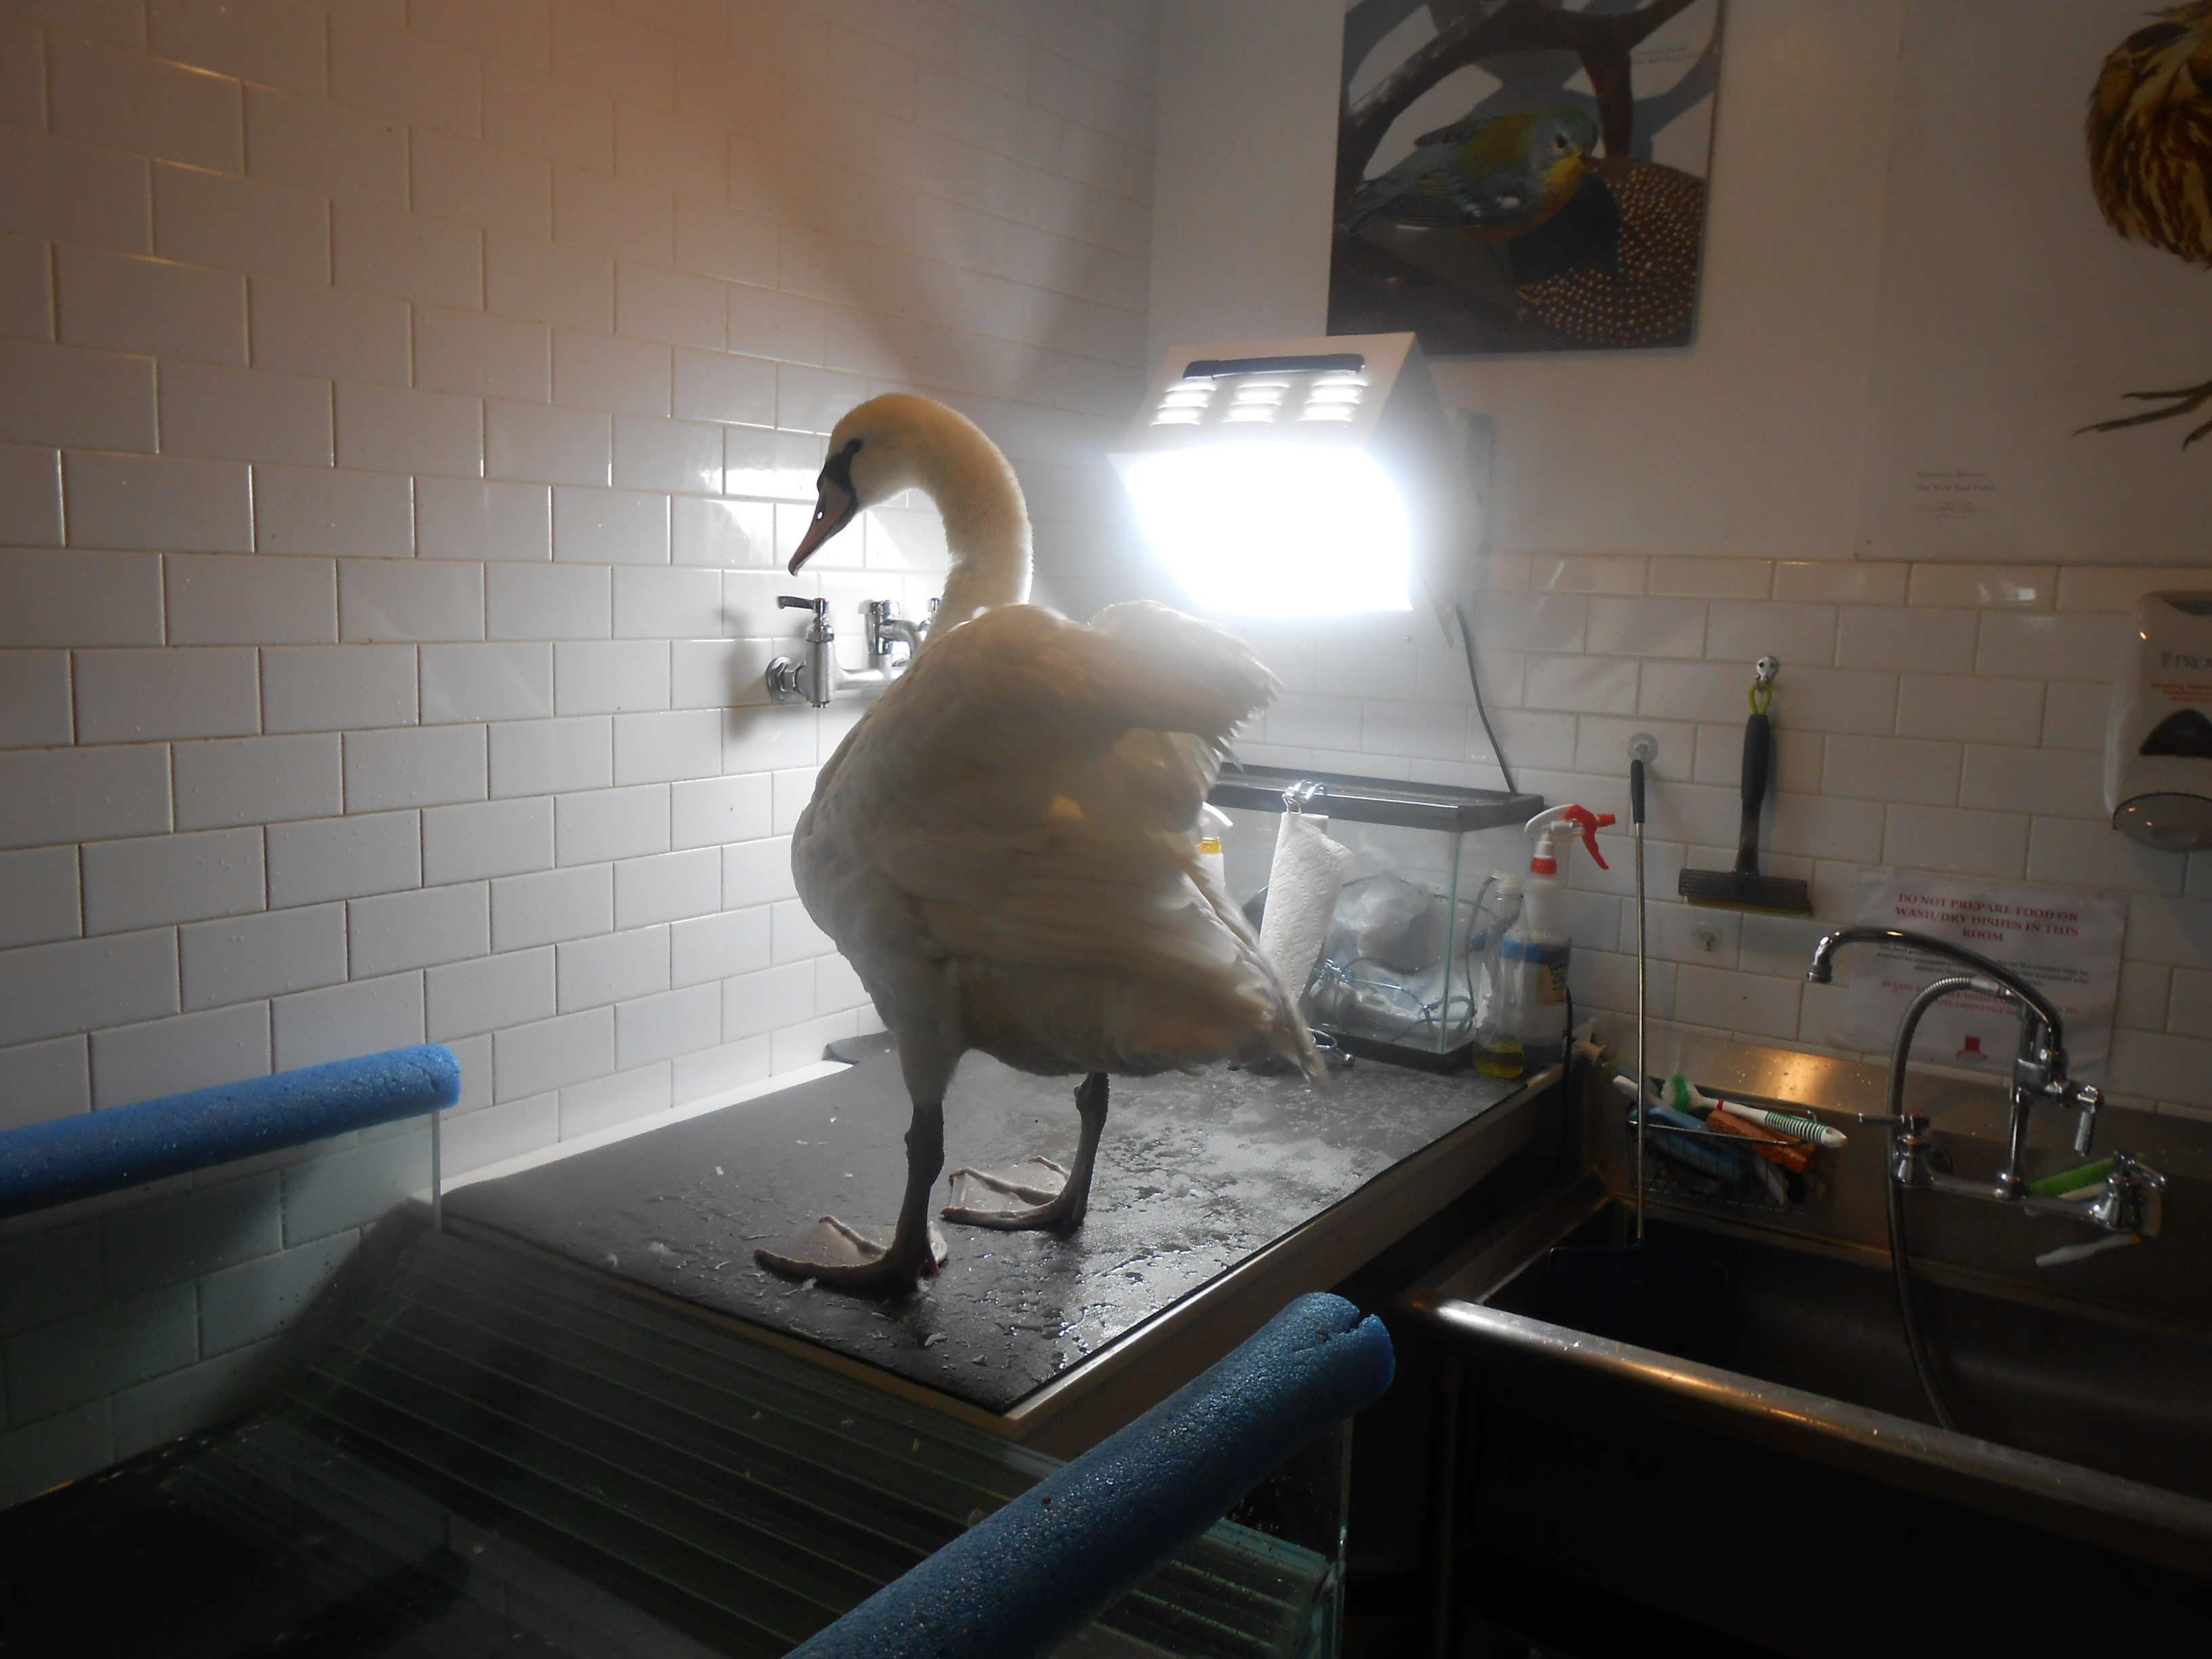 Vanessa the Swan at the Wild Bird Fund